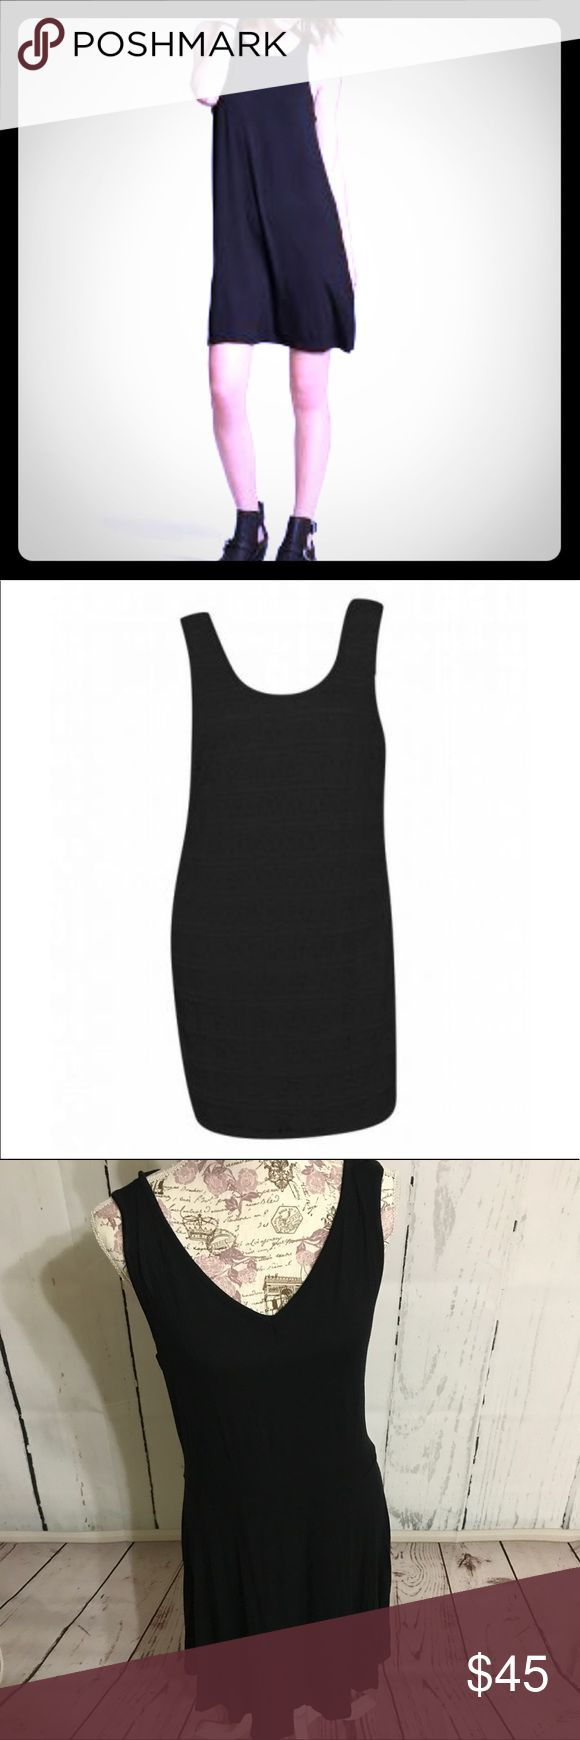 """Black Razorback Sleeveless Sumner Dress Try this as your new, little black dress for summer. This Black Razorback Sleeveless Summer Dress is the perfect combination of comfy and sexy. The back is what sets this one apart. Easy to dress up for a date or dress down for a BBQ or summer party. Can even be used as a swimsuit coverup while cruising or perusing on a beach. 95% Rayon 5% Spandex. Has tons of stretch. From waist = 19"""" long, 1X Bust pit to pit = 20"""", waist = 20"""". True to size. Brand…"""